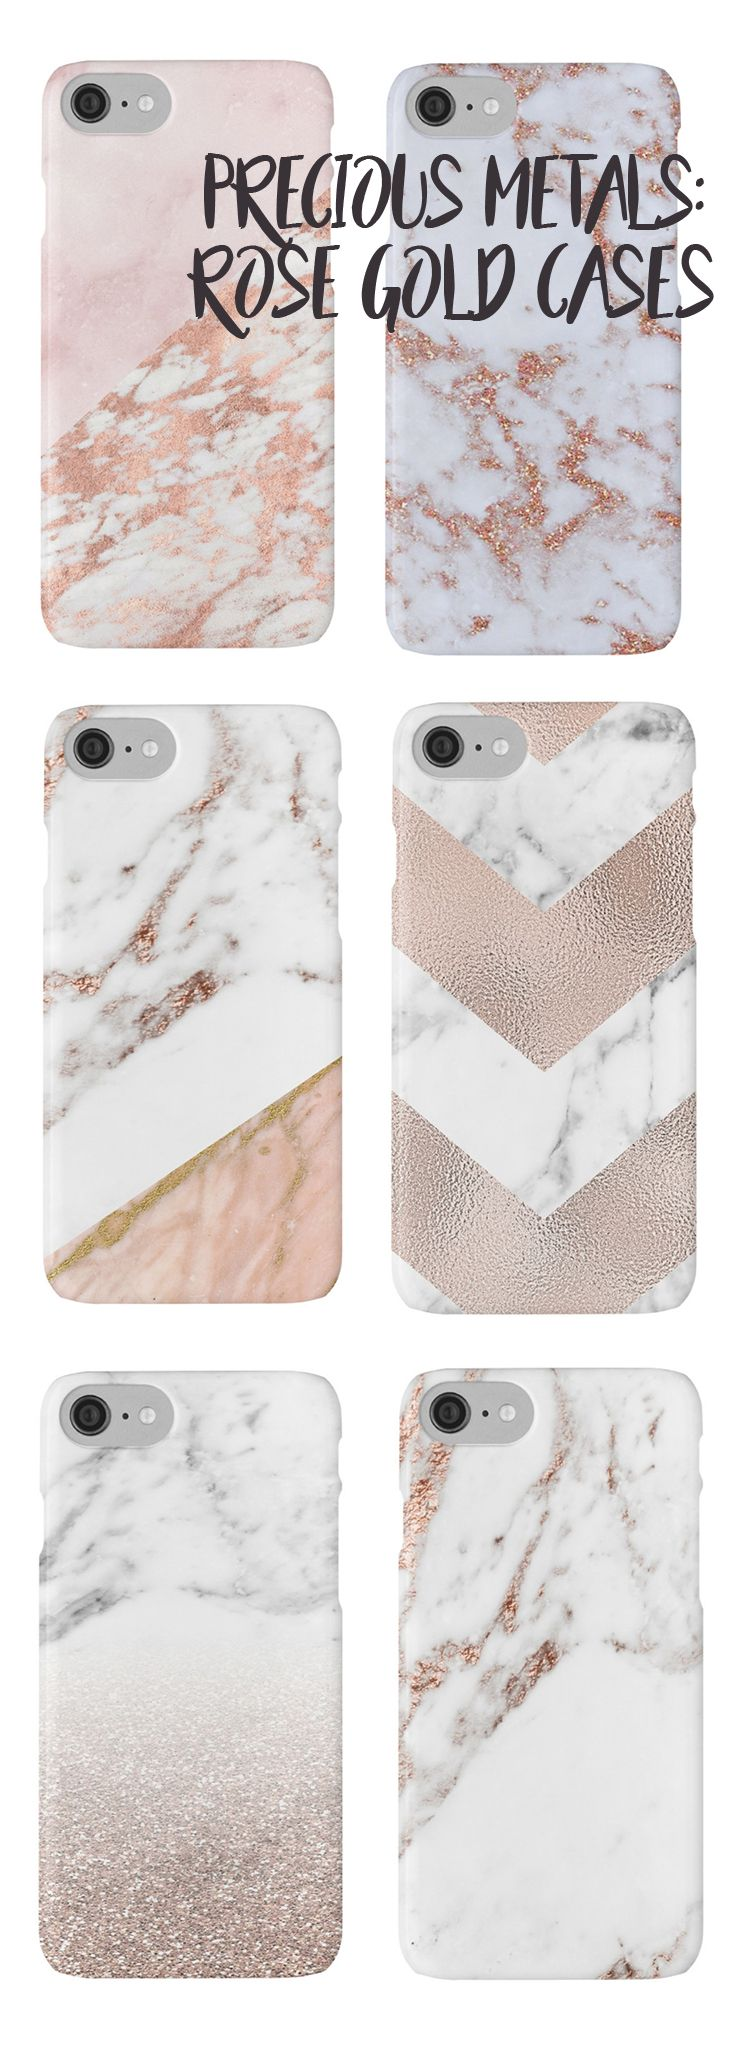 Shop here for the most stunning rose gold phone cases - Peggie Prints on Redbubble Bags, Scarves, Belts, Hats, Sunglasses, Socks & Tights, Phone Cases, Shoes, Cases. women's fashion, outfit inspiration, pretty clothes, shoes, bags and accessories